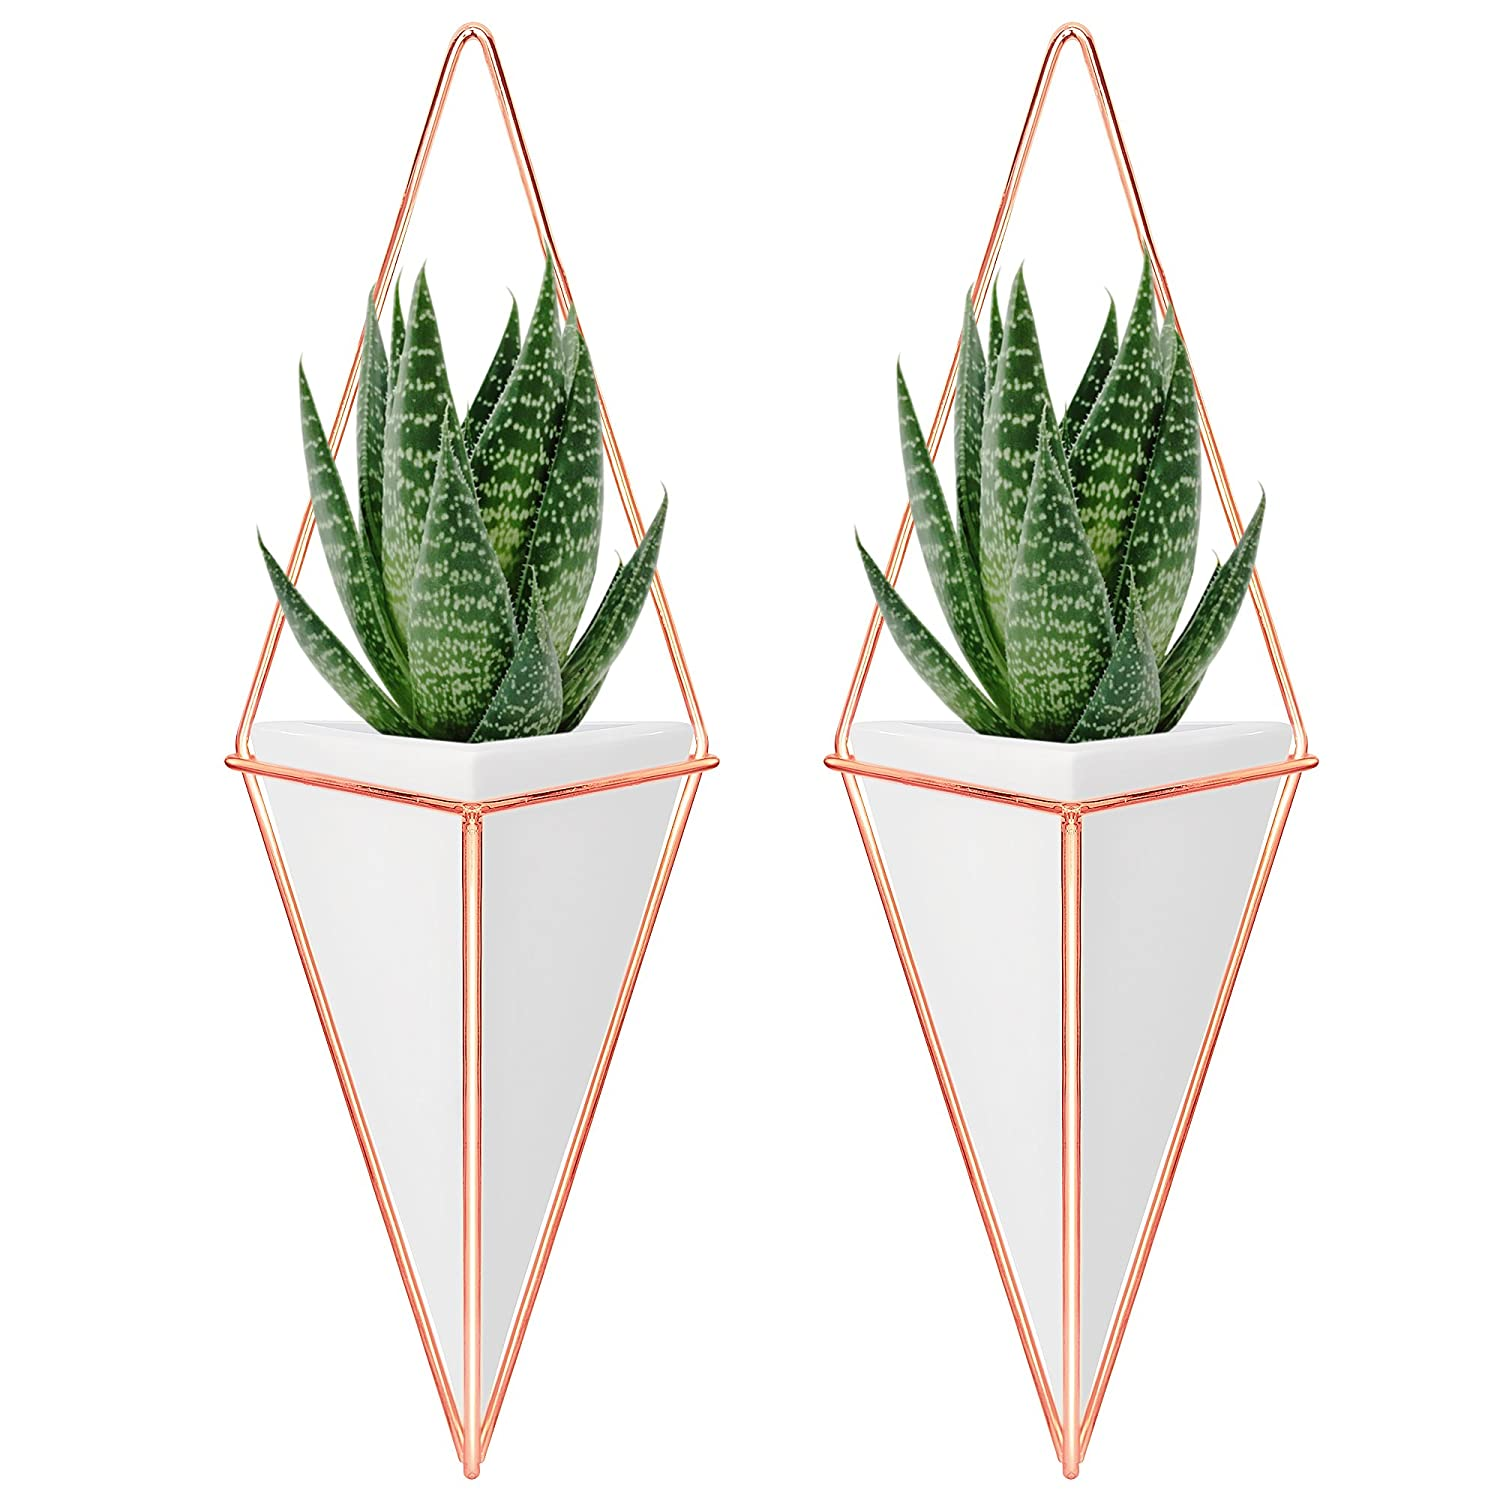 Amazoncom Nellam Ceramic Planter Set  2 Pcs Modern Geometric